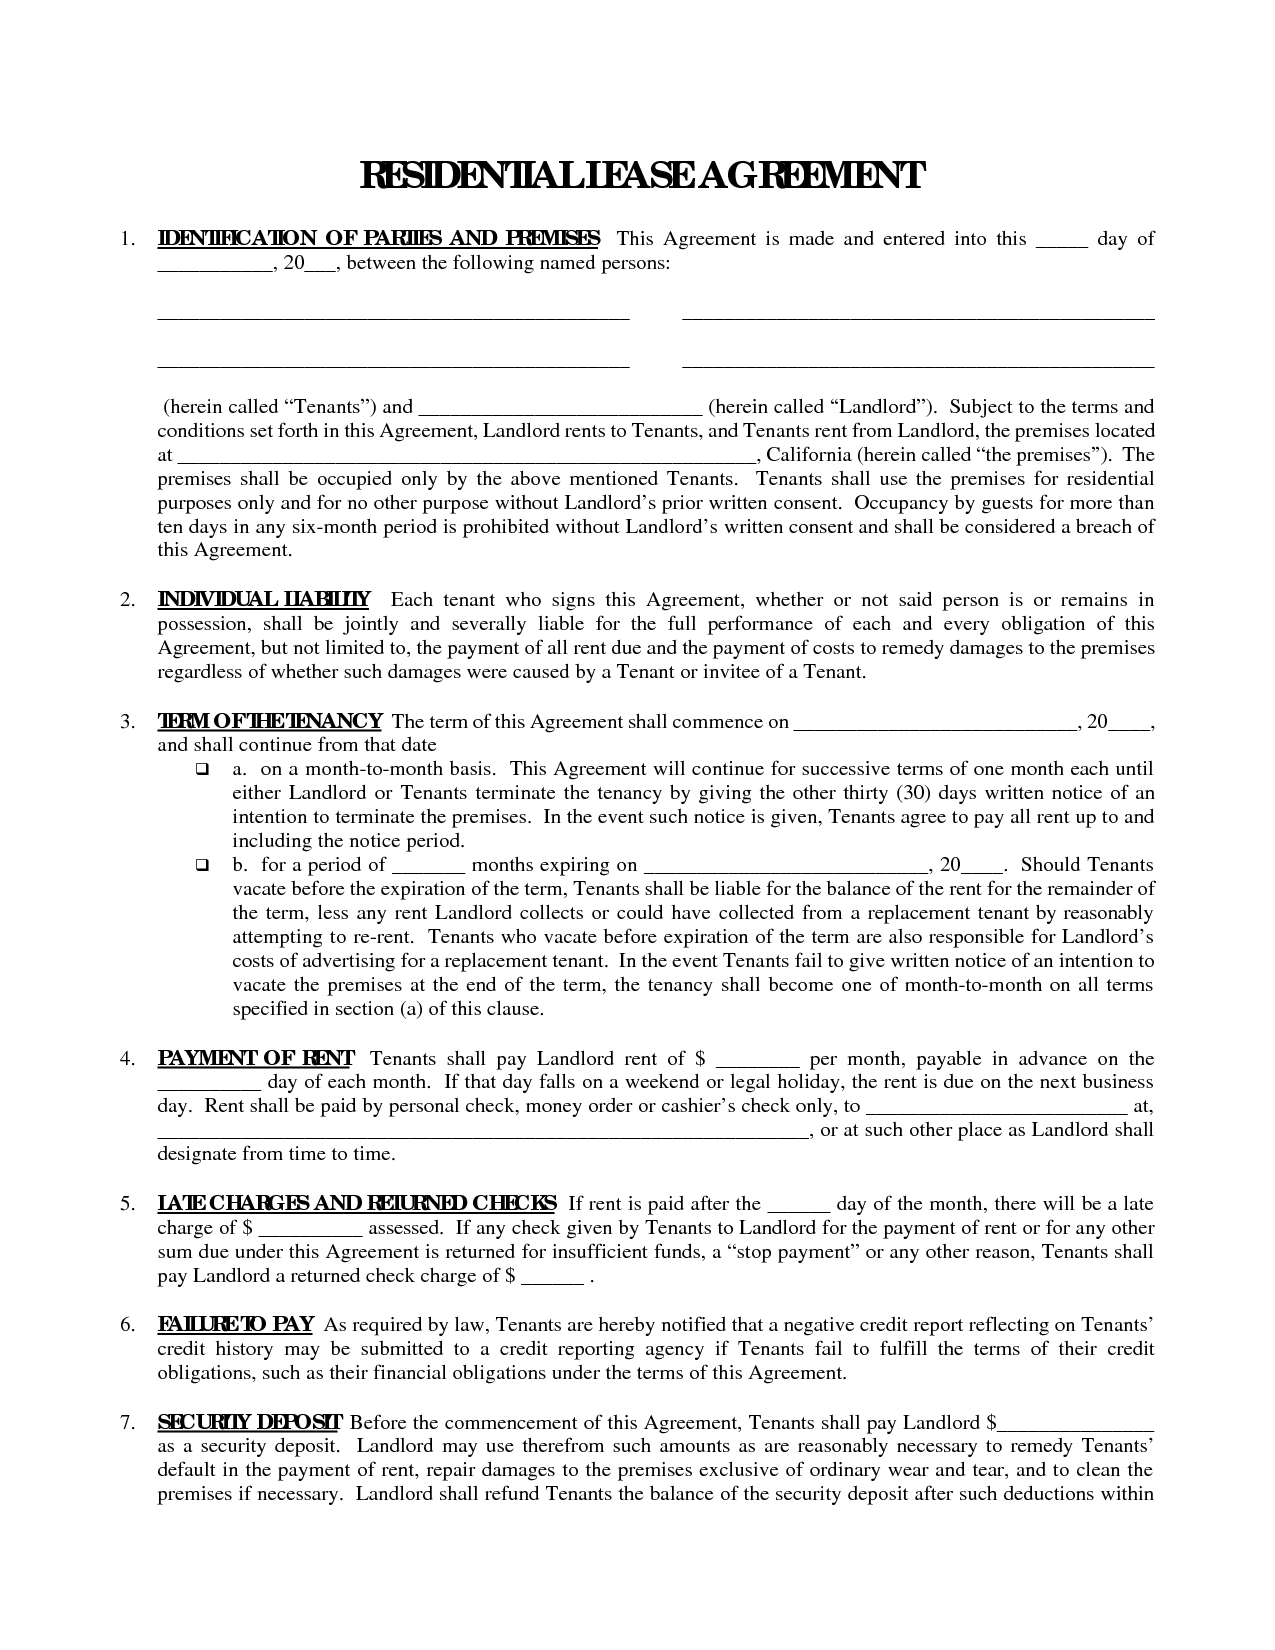 Printable Residential Free House Lease Agreement | Residential Lease - Free Printable Residential Rental Agreement Forms